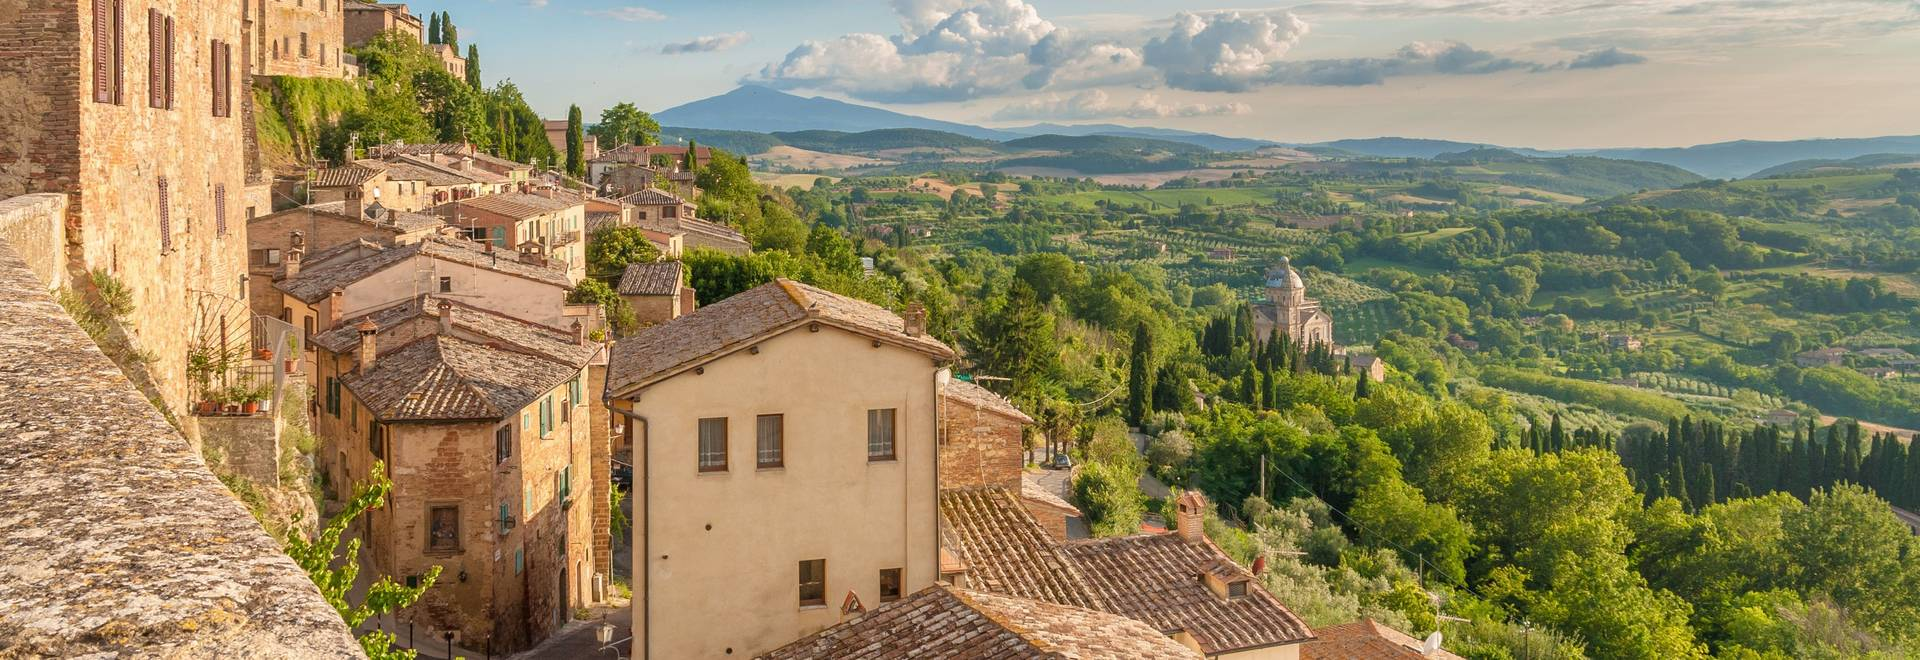 shutterstock_207462112 Landscape of the Tuscany seen from the walls of Montepulciano,.jpg